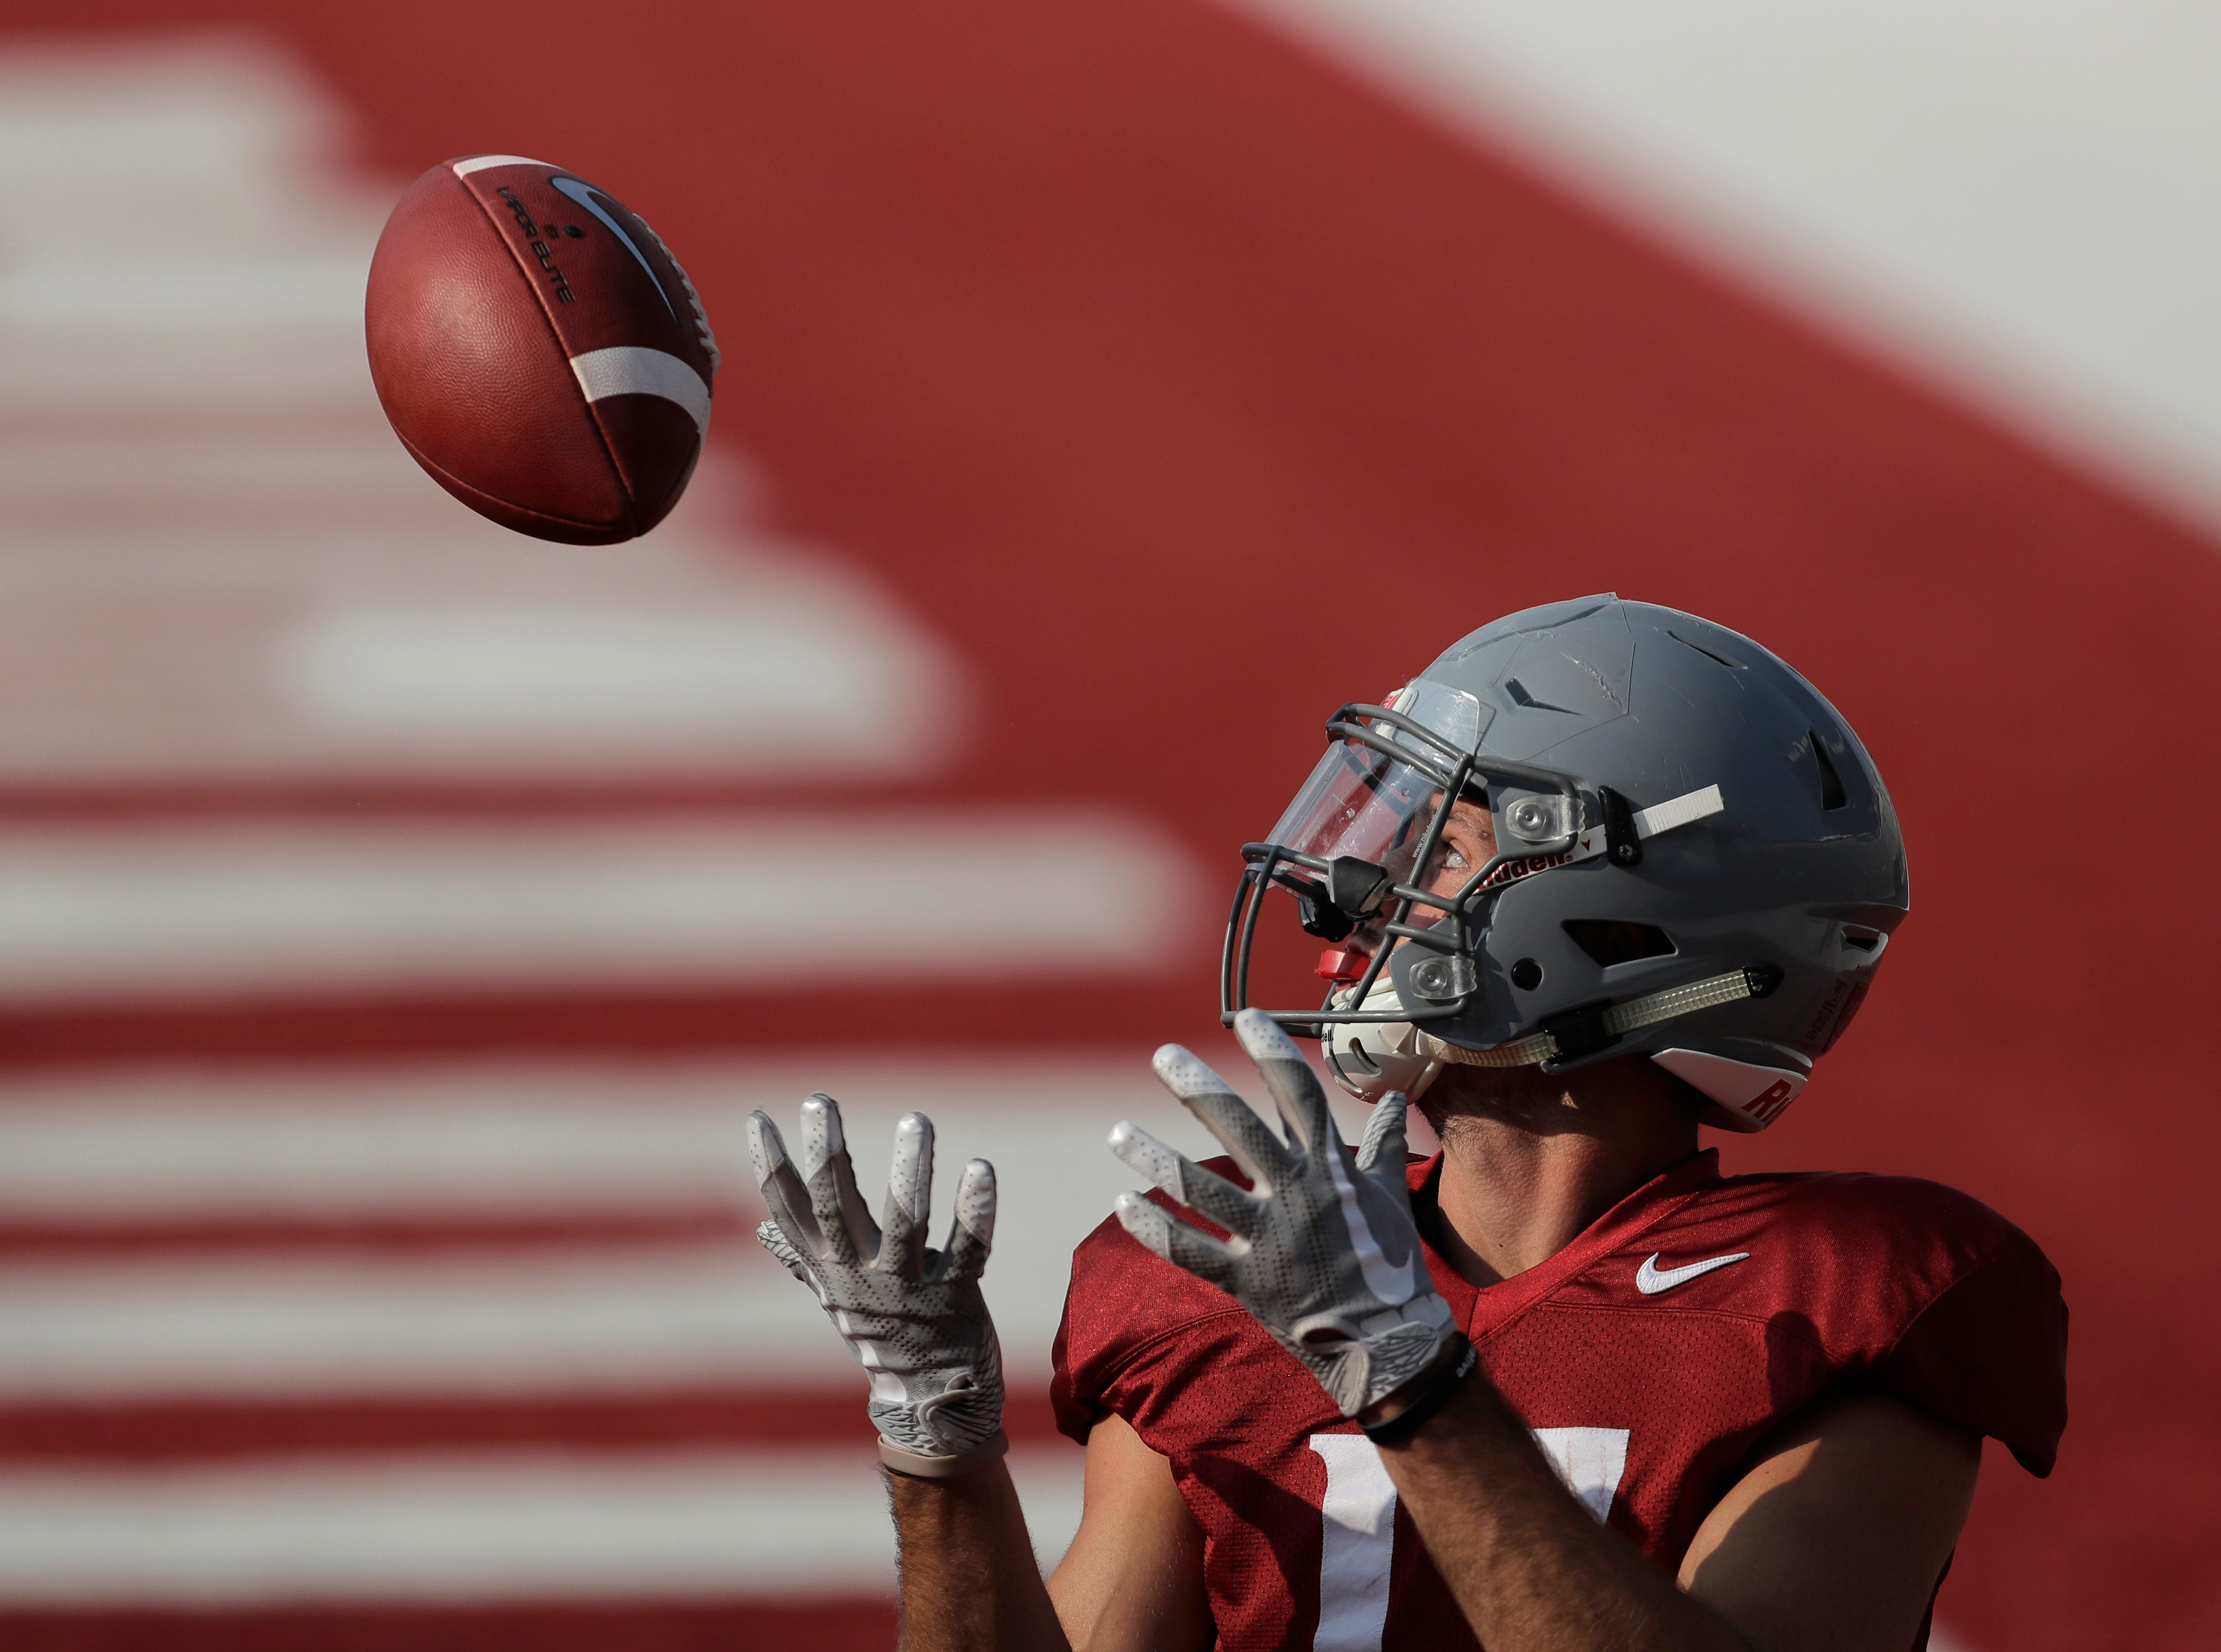 Washington State wide receiver Kyle Sweet makes a catch in the end zone during Thursday's practice.